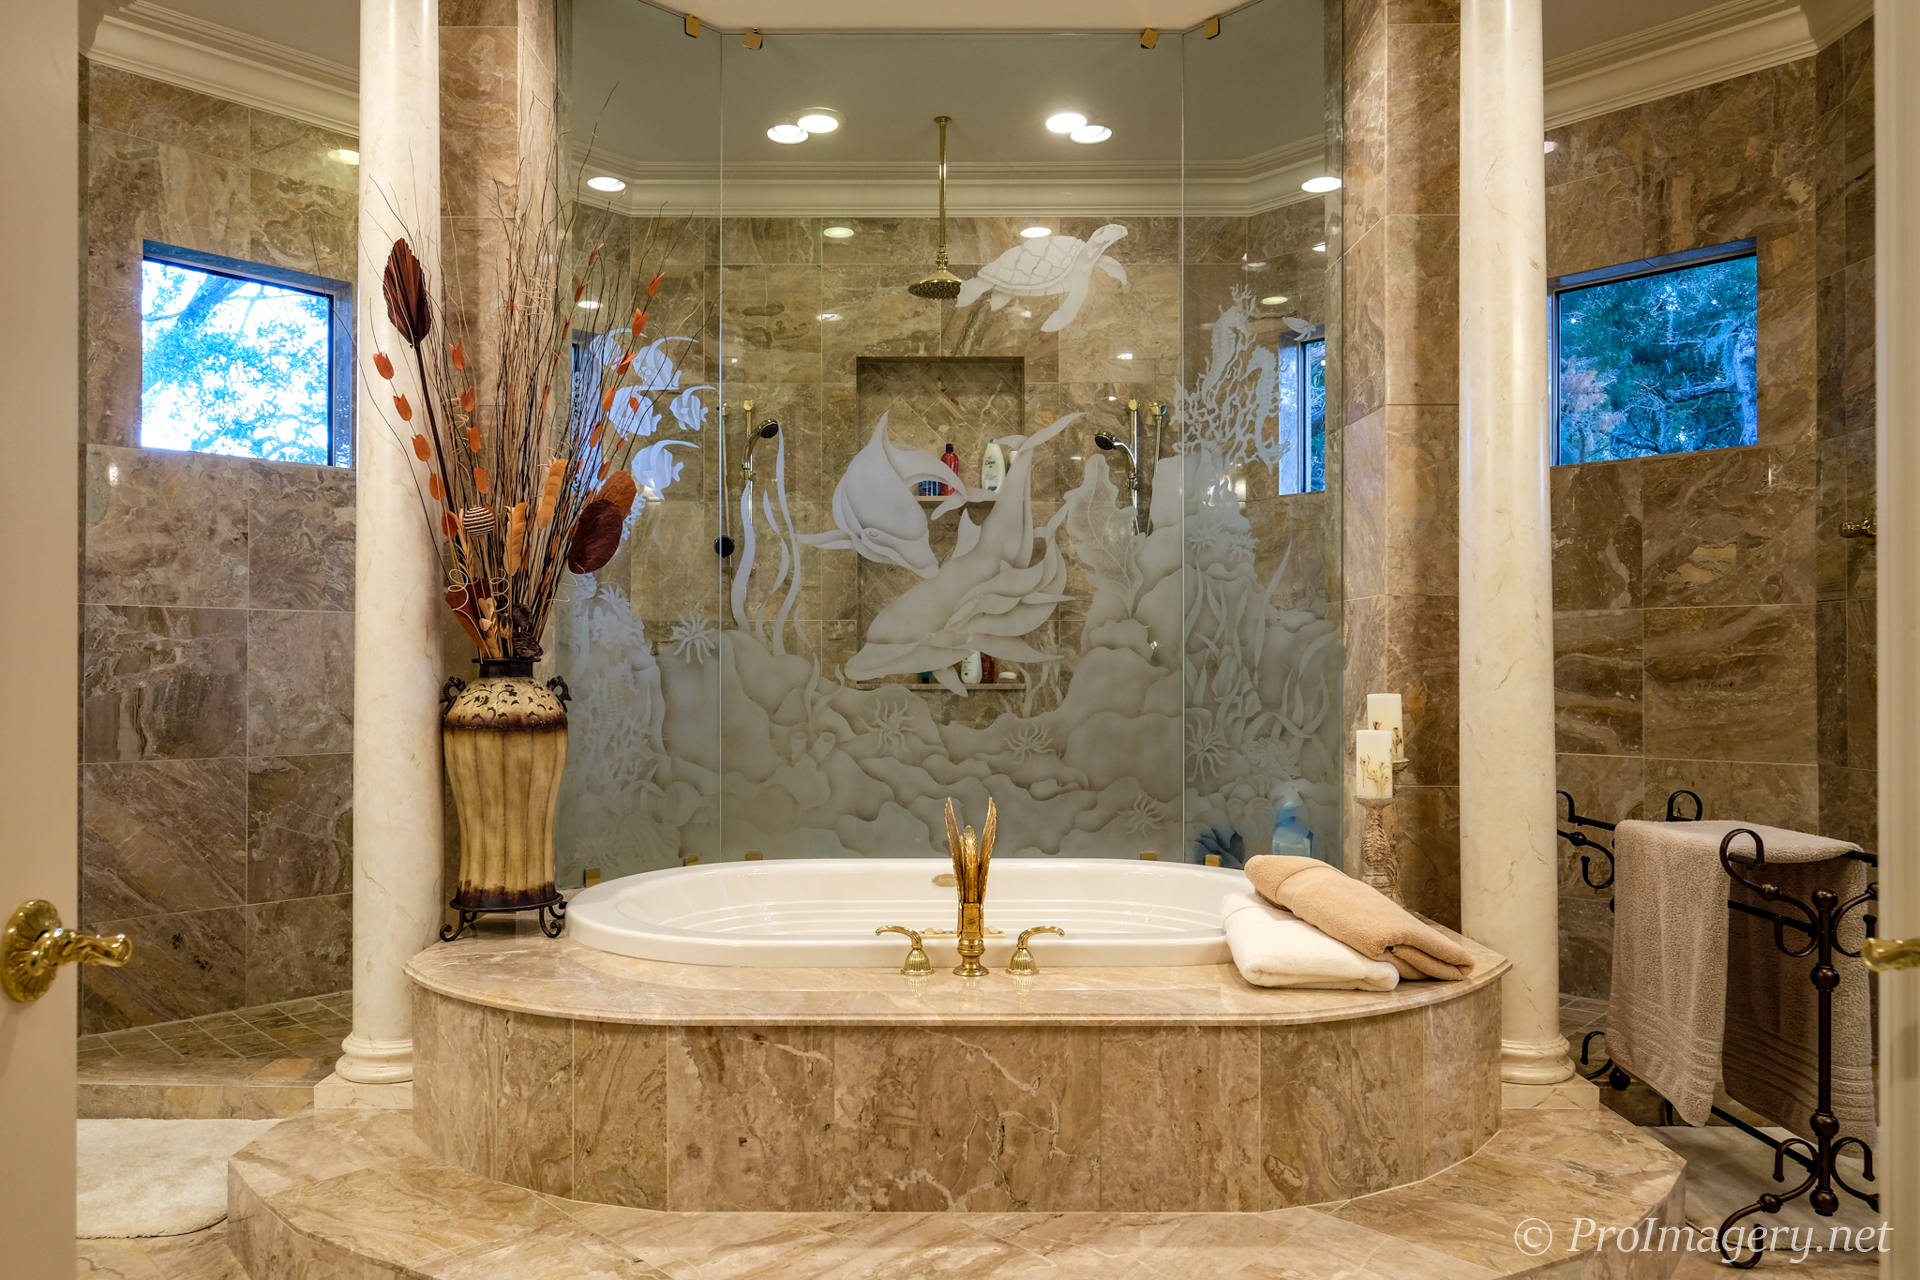 1321-Point-Crisp-Road-Sarasota-Bathroom-